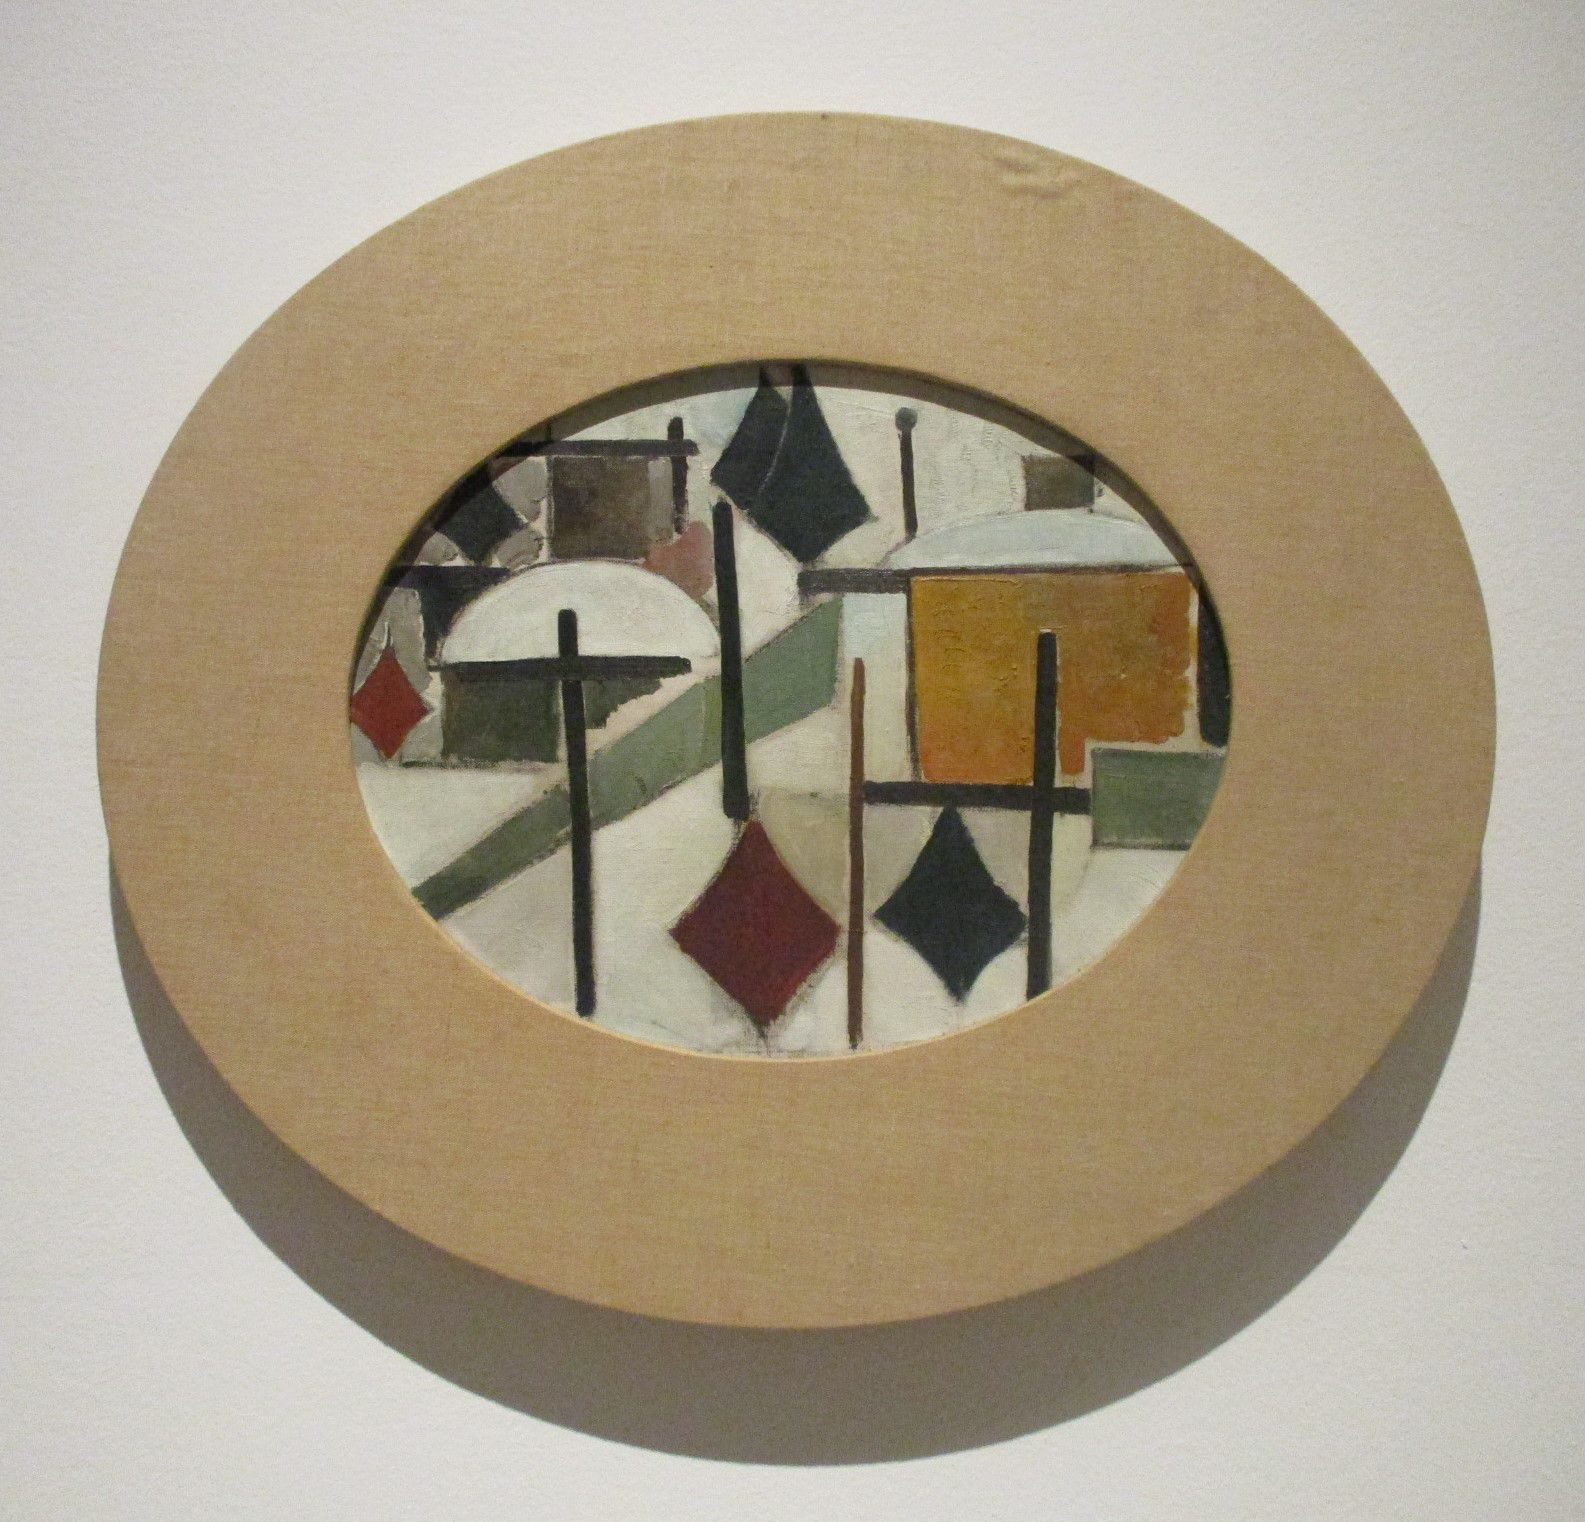 Composition ovale - Theo von Doesburg, 1931